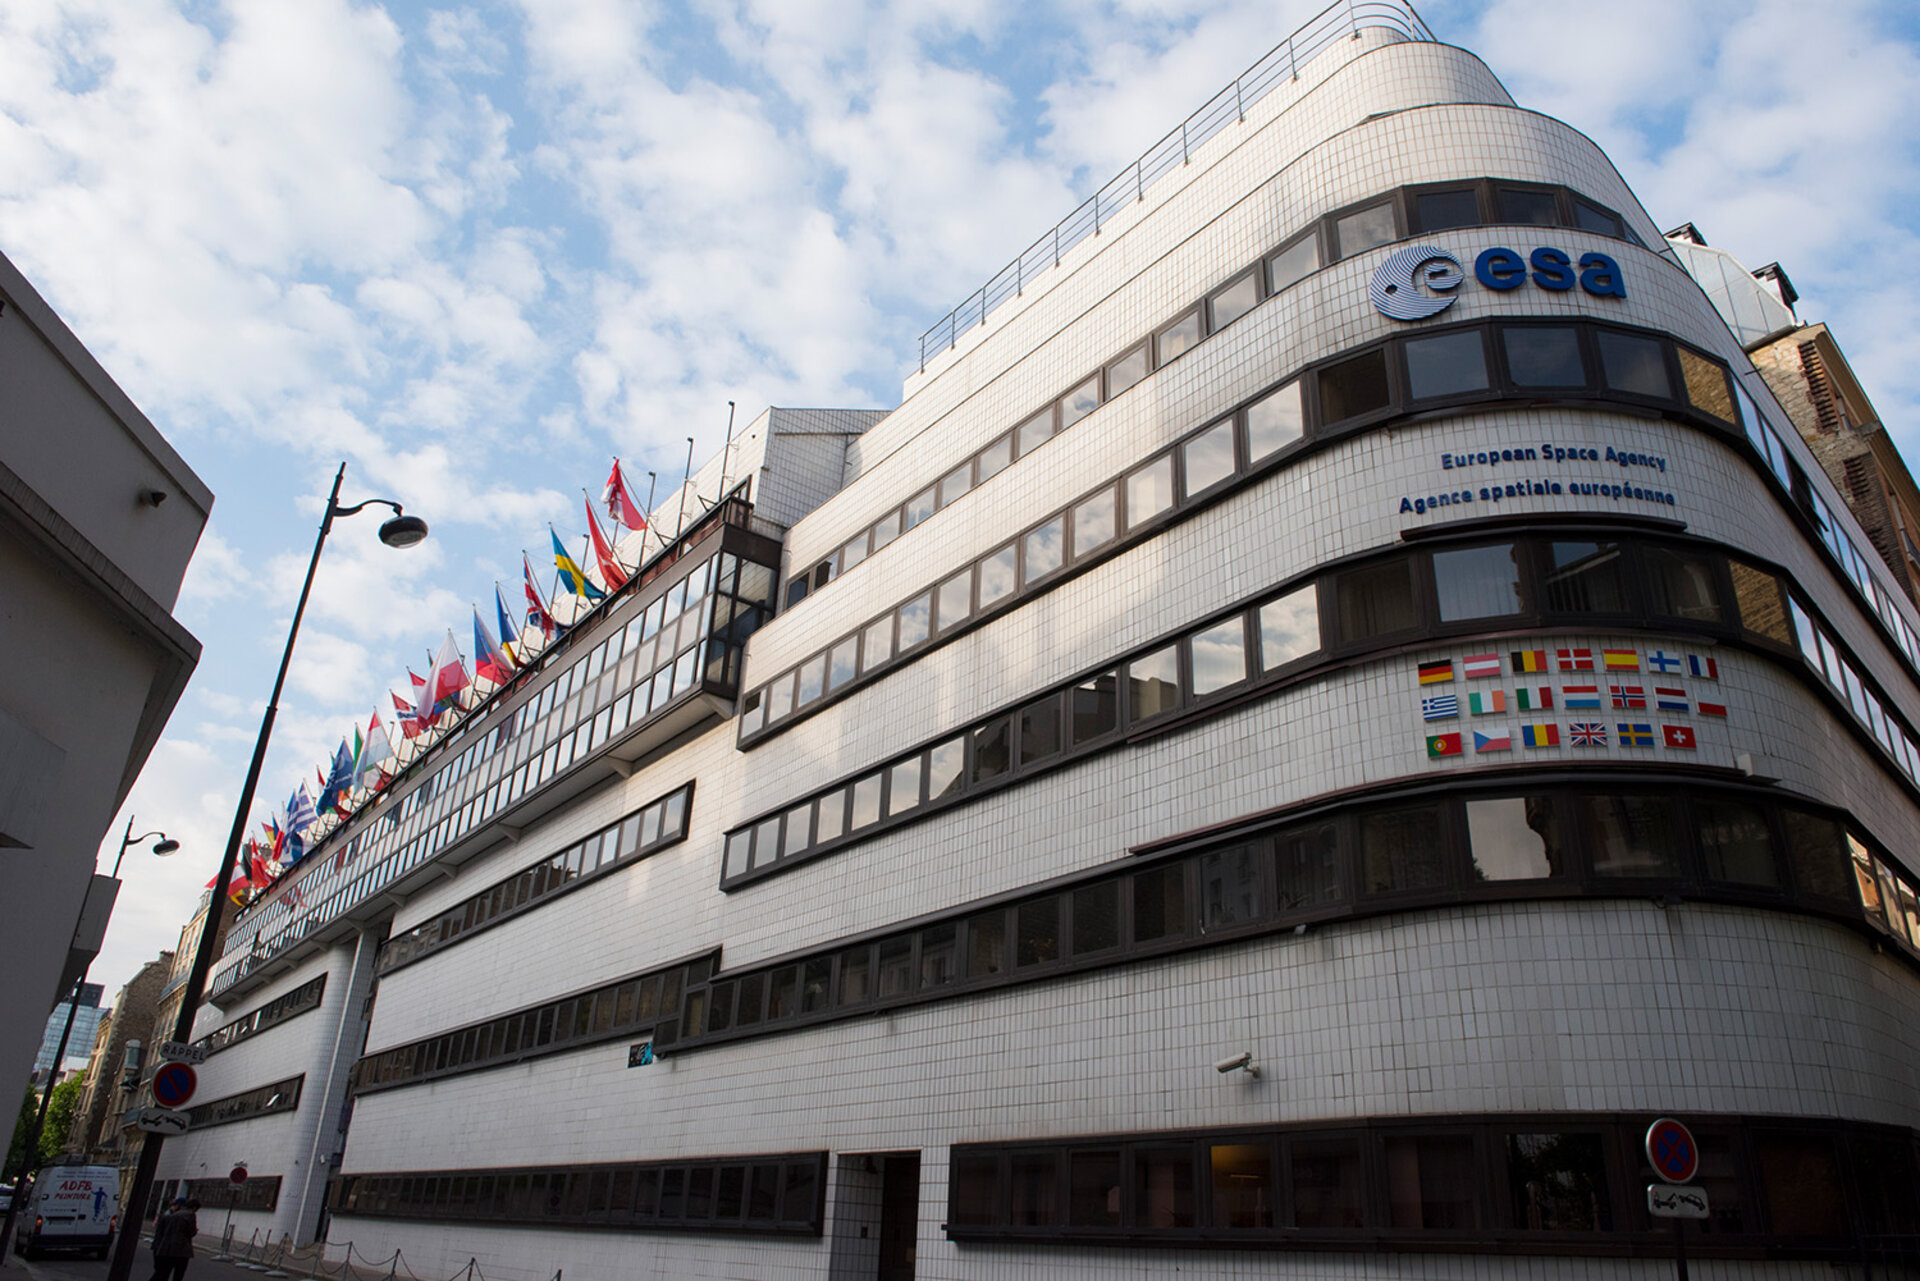 Council meetings are regularly hosted at ESA's HQ in Paris